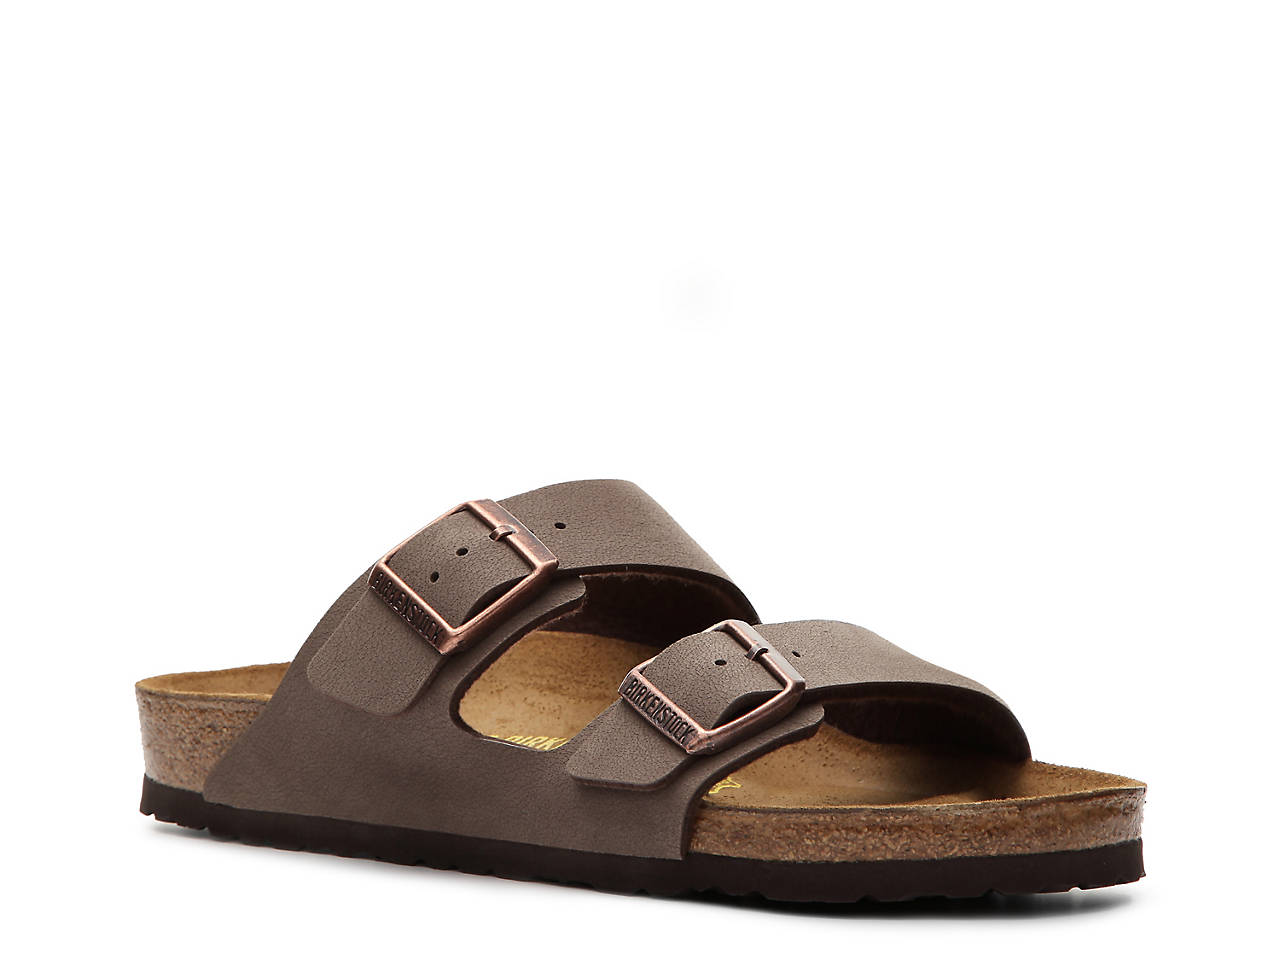 6517214f8e29 Birkenstock Arizona Birko-Flor Slide Sandal - Men s Men s Shoes